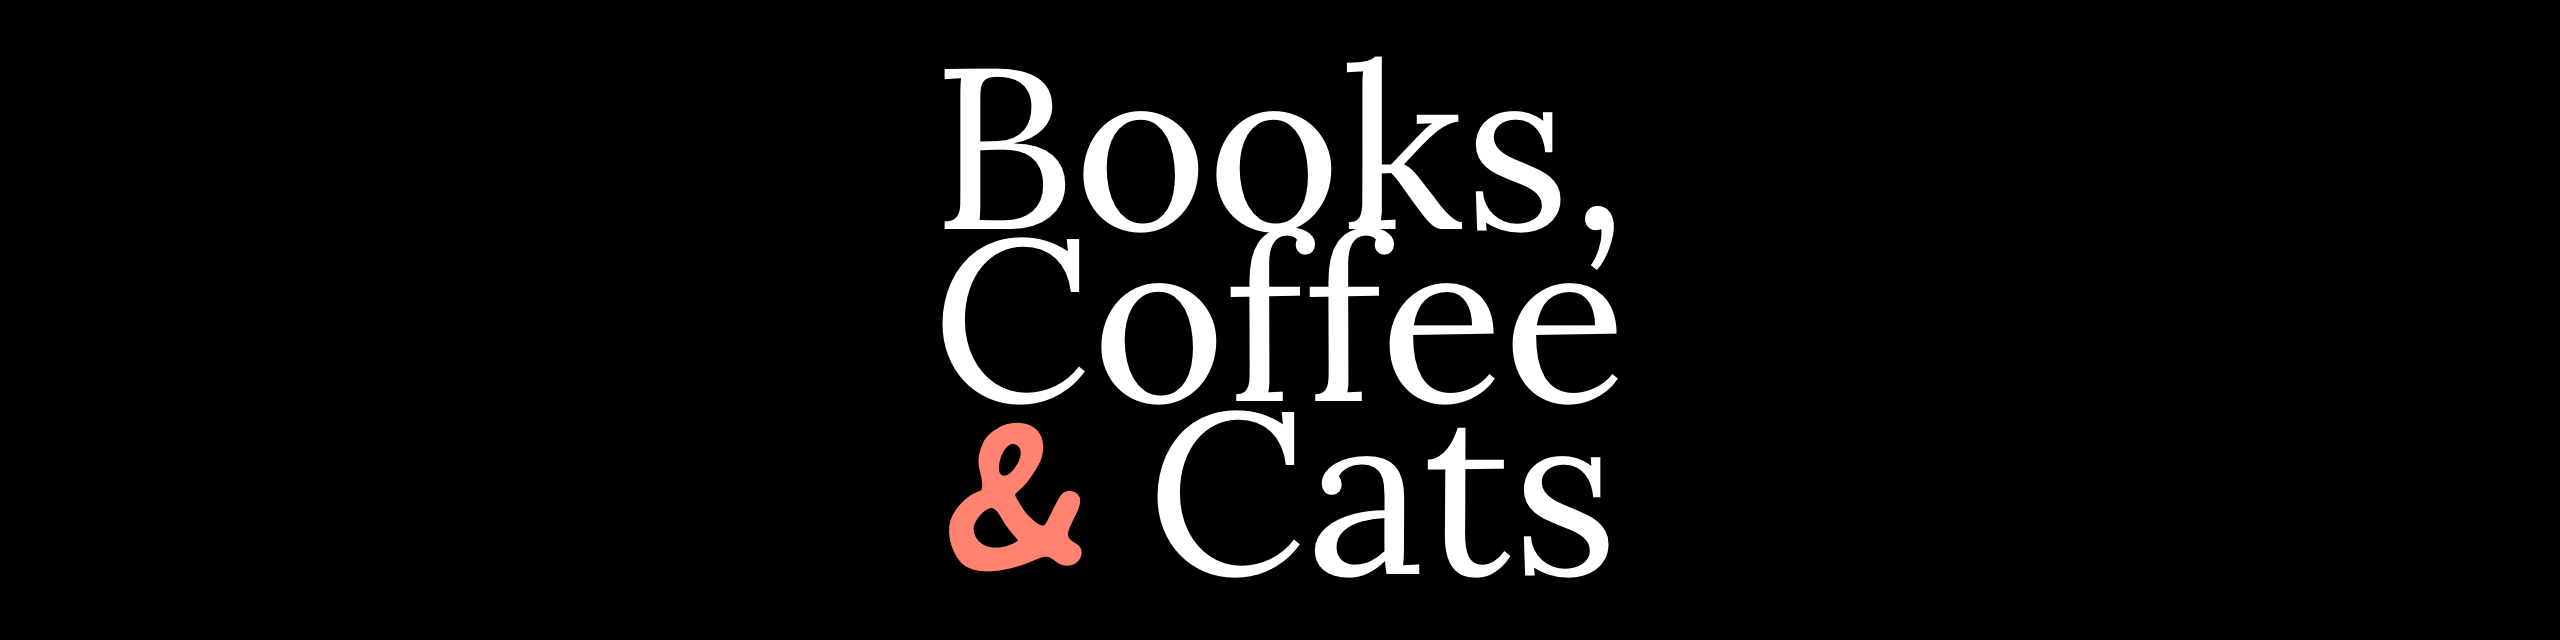 Books, Coffee & Cats